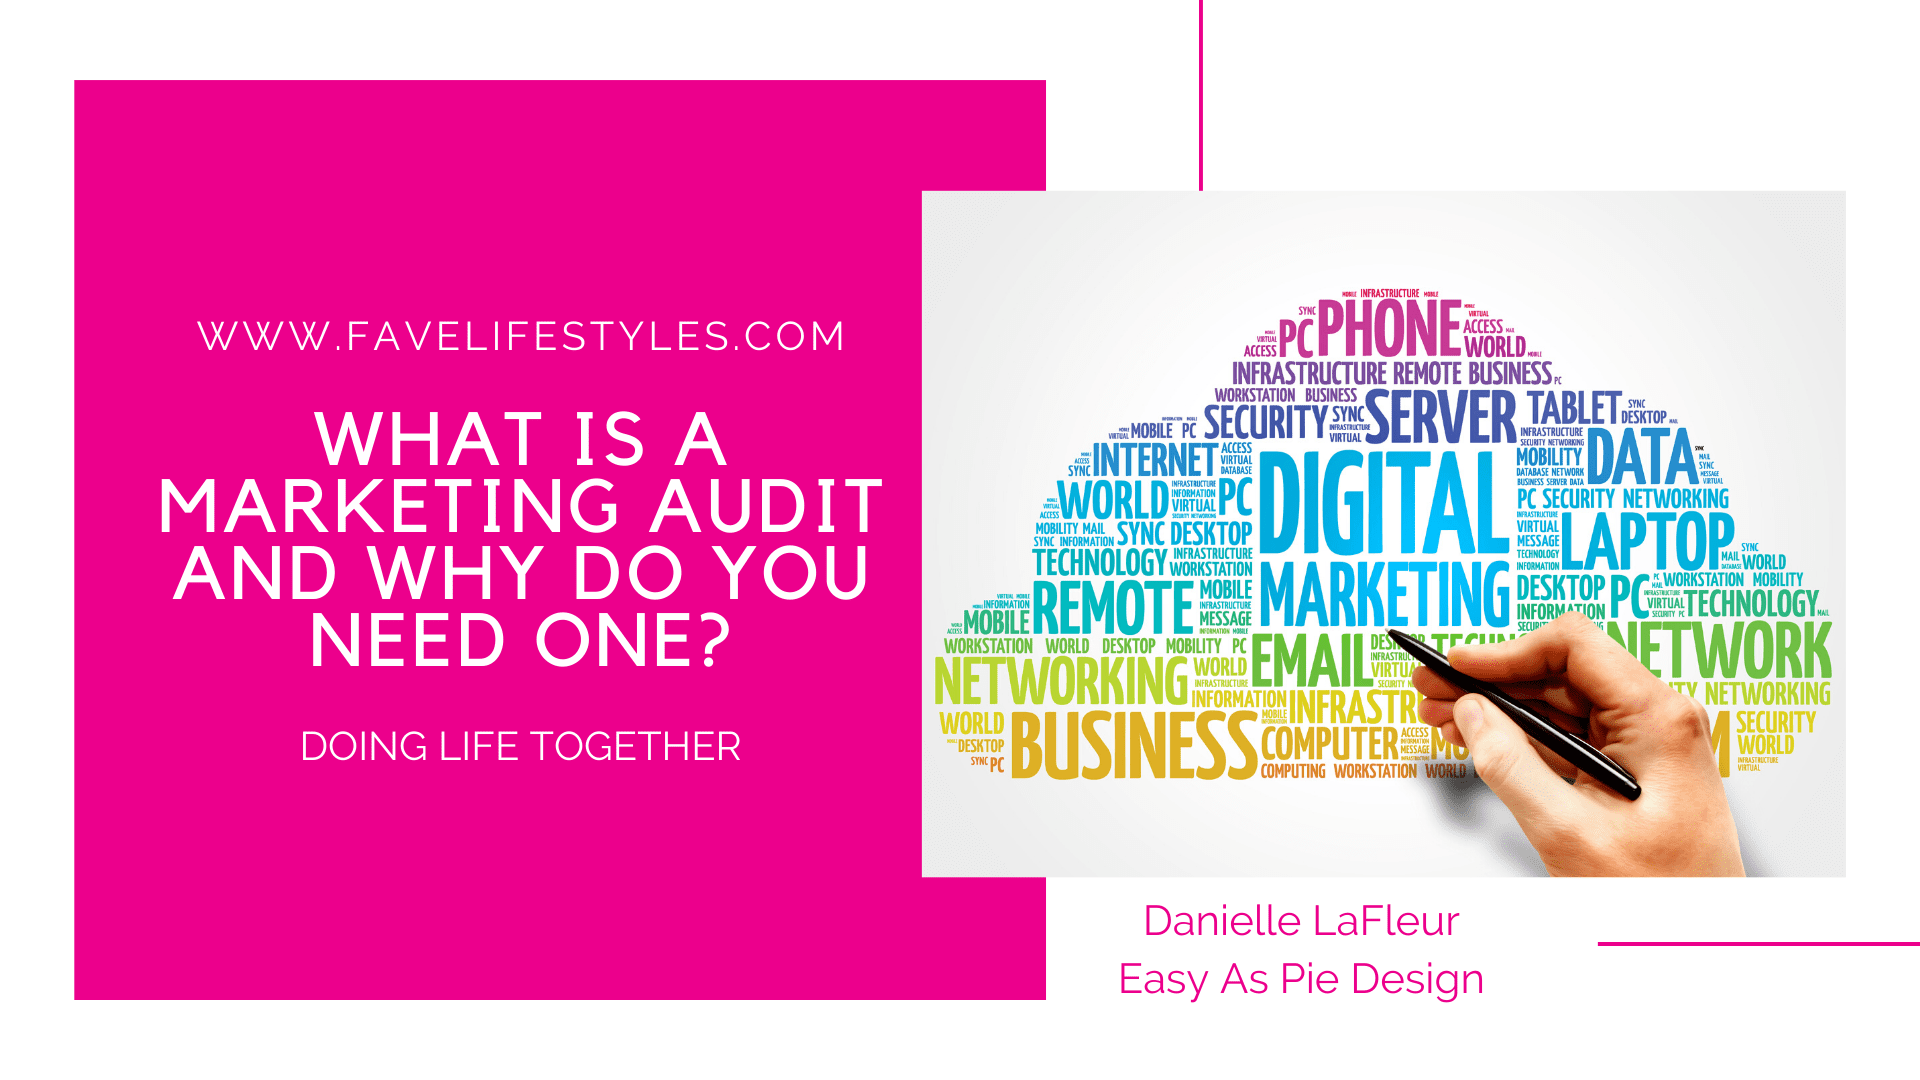 What is a Marketing Audit and Why do you need one?